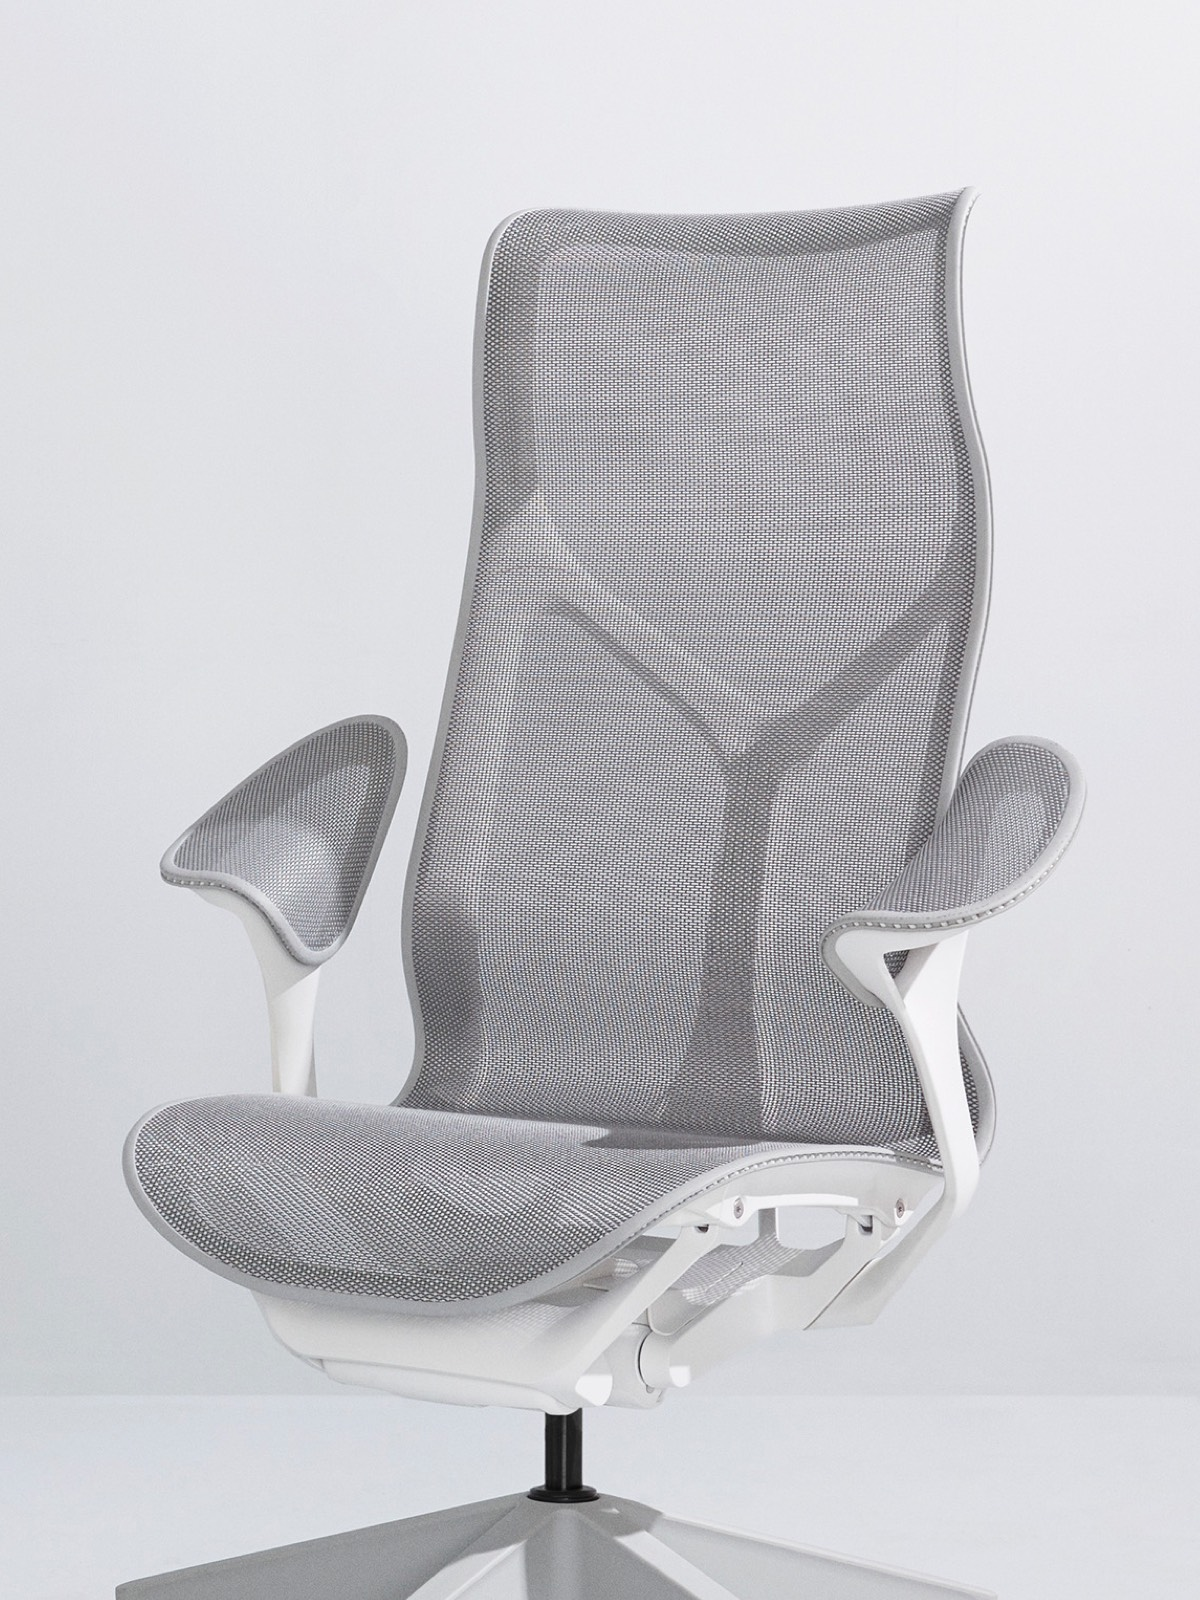 A Mineral grey high-back Cosm Chair with a white frame and leaf arms on a light grey background.